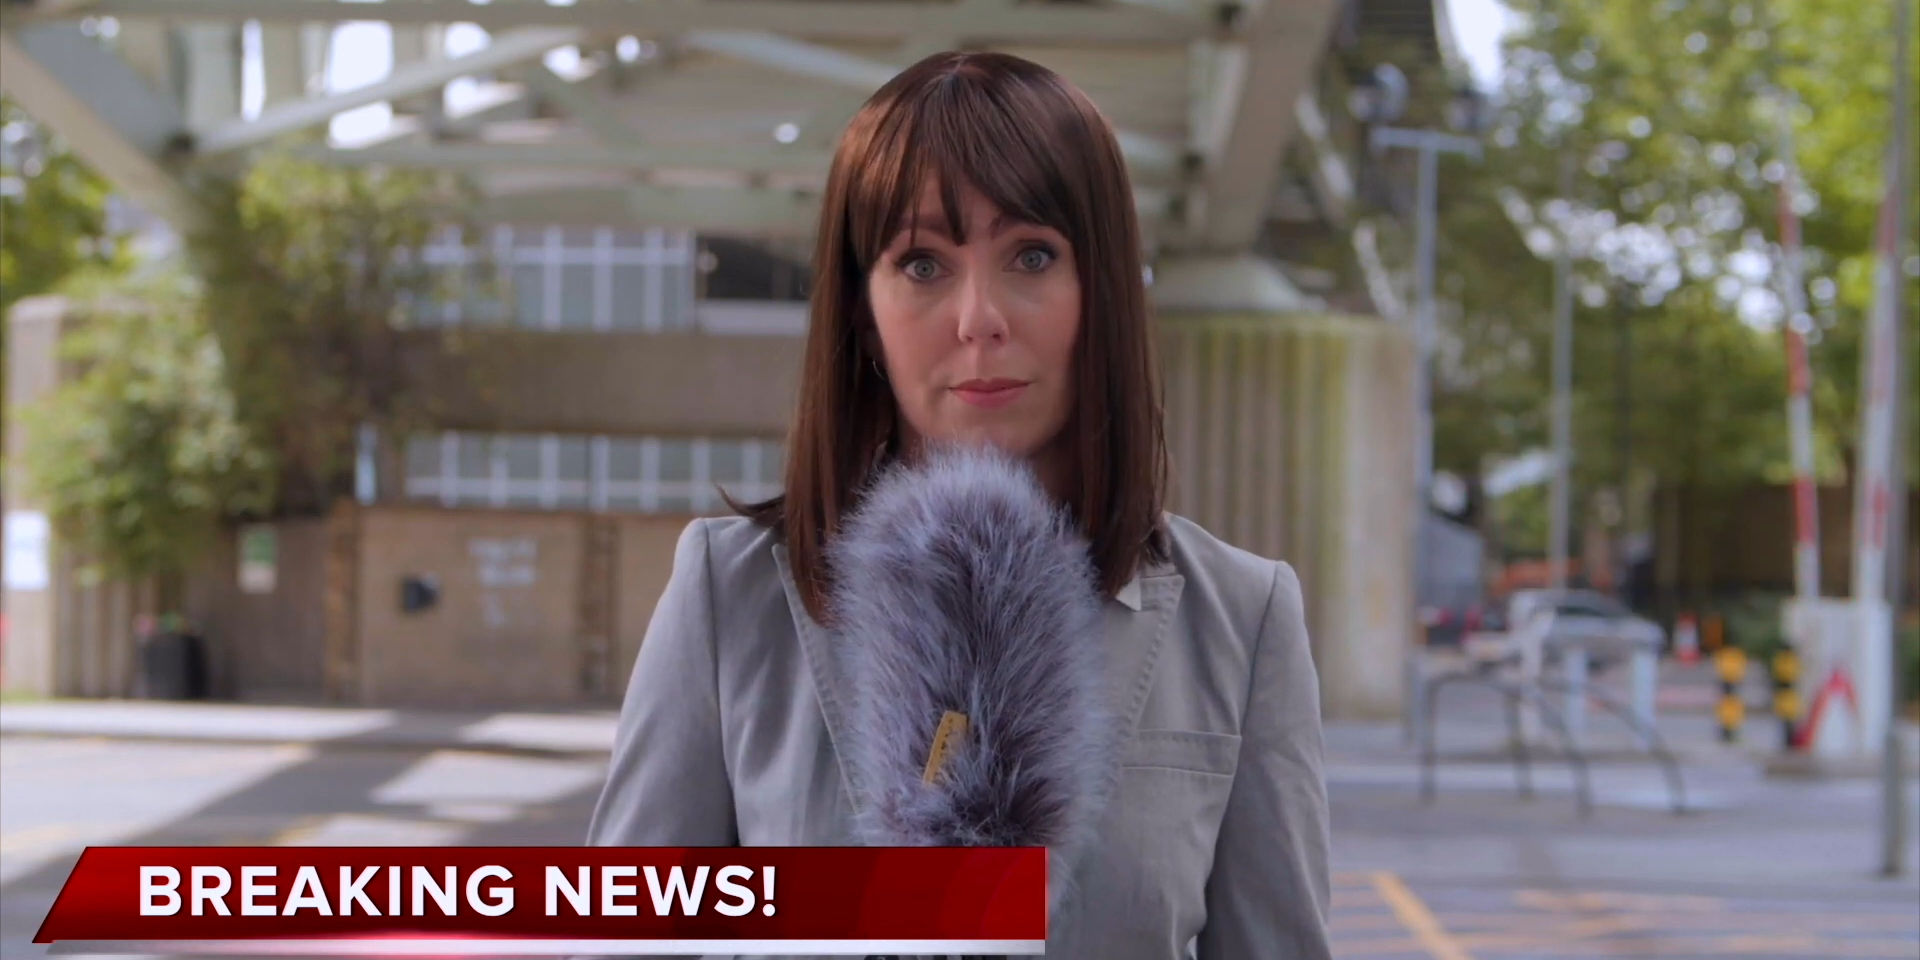 Still from short film Fraudsters' Trailer featuring Louise Monet, produced by Fresh Media Productions